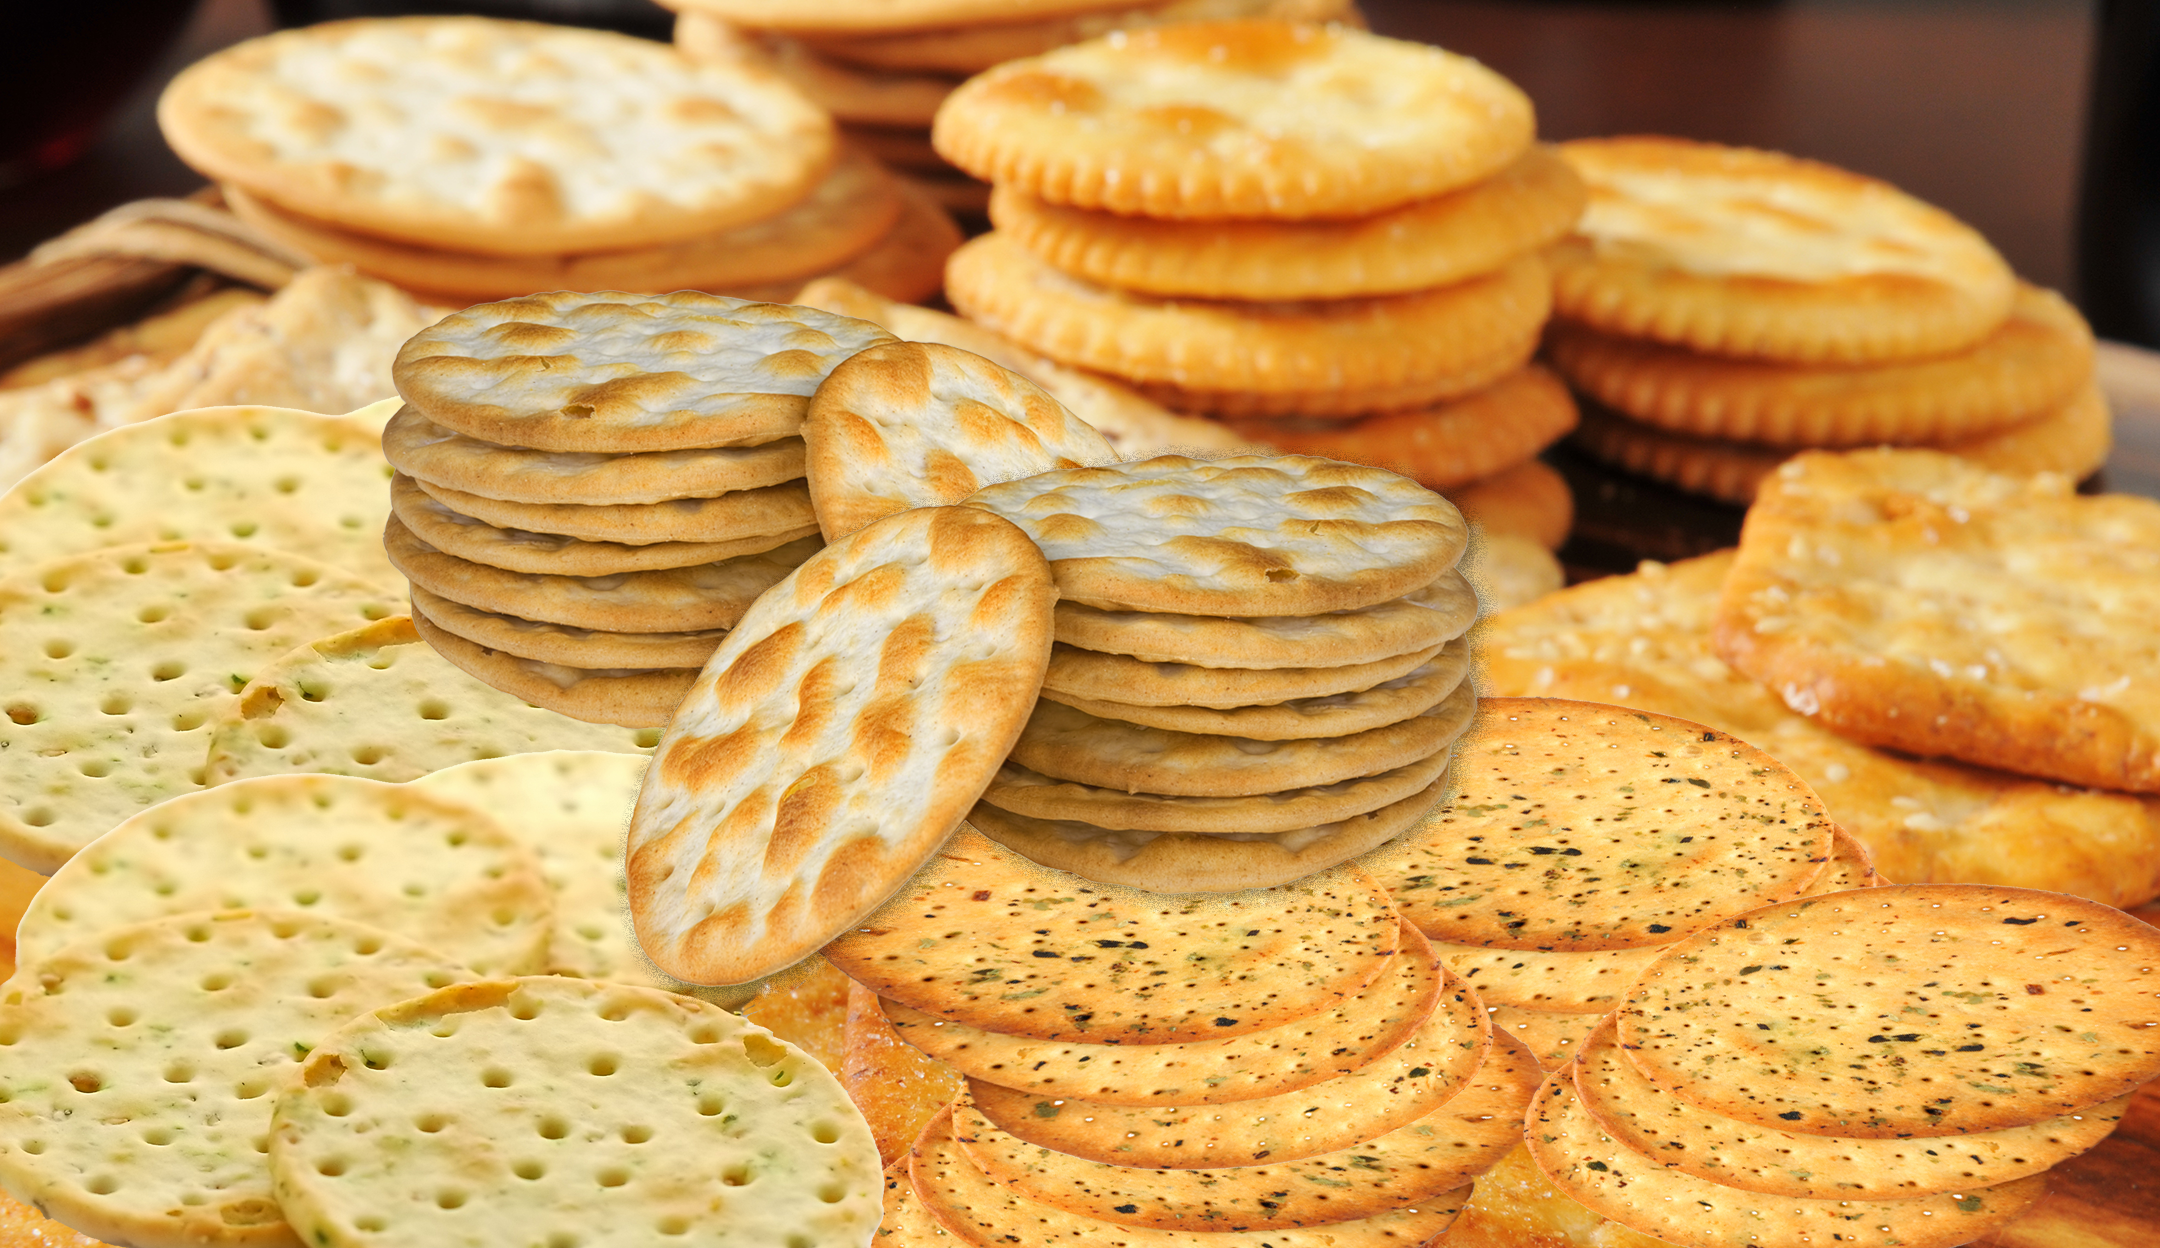 Assortment of crackers